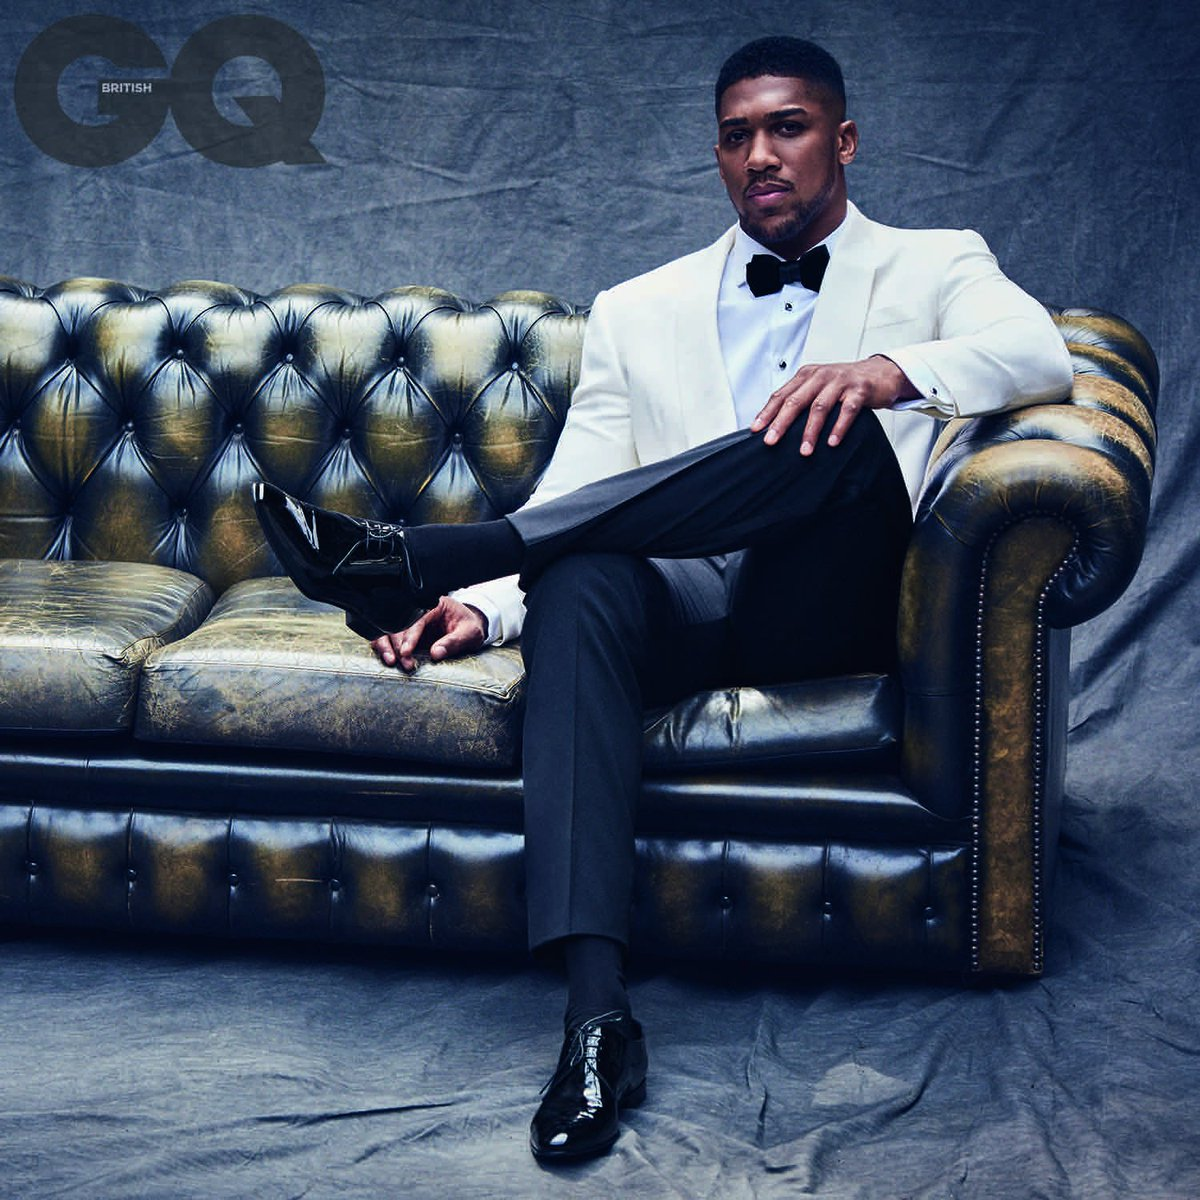 @AnthonyfJoshua featured in the October issue of @BritishGQ wearing Ralph Lauren Purple Label. https://t.co/vkCz5Rq4Kx